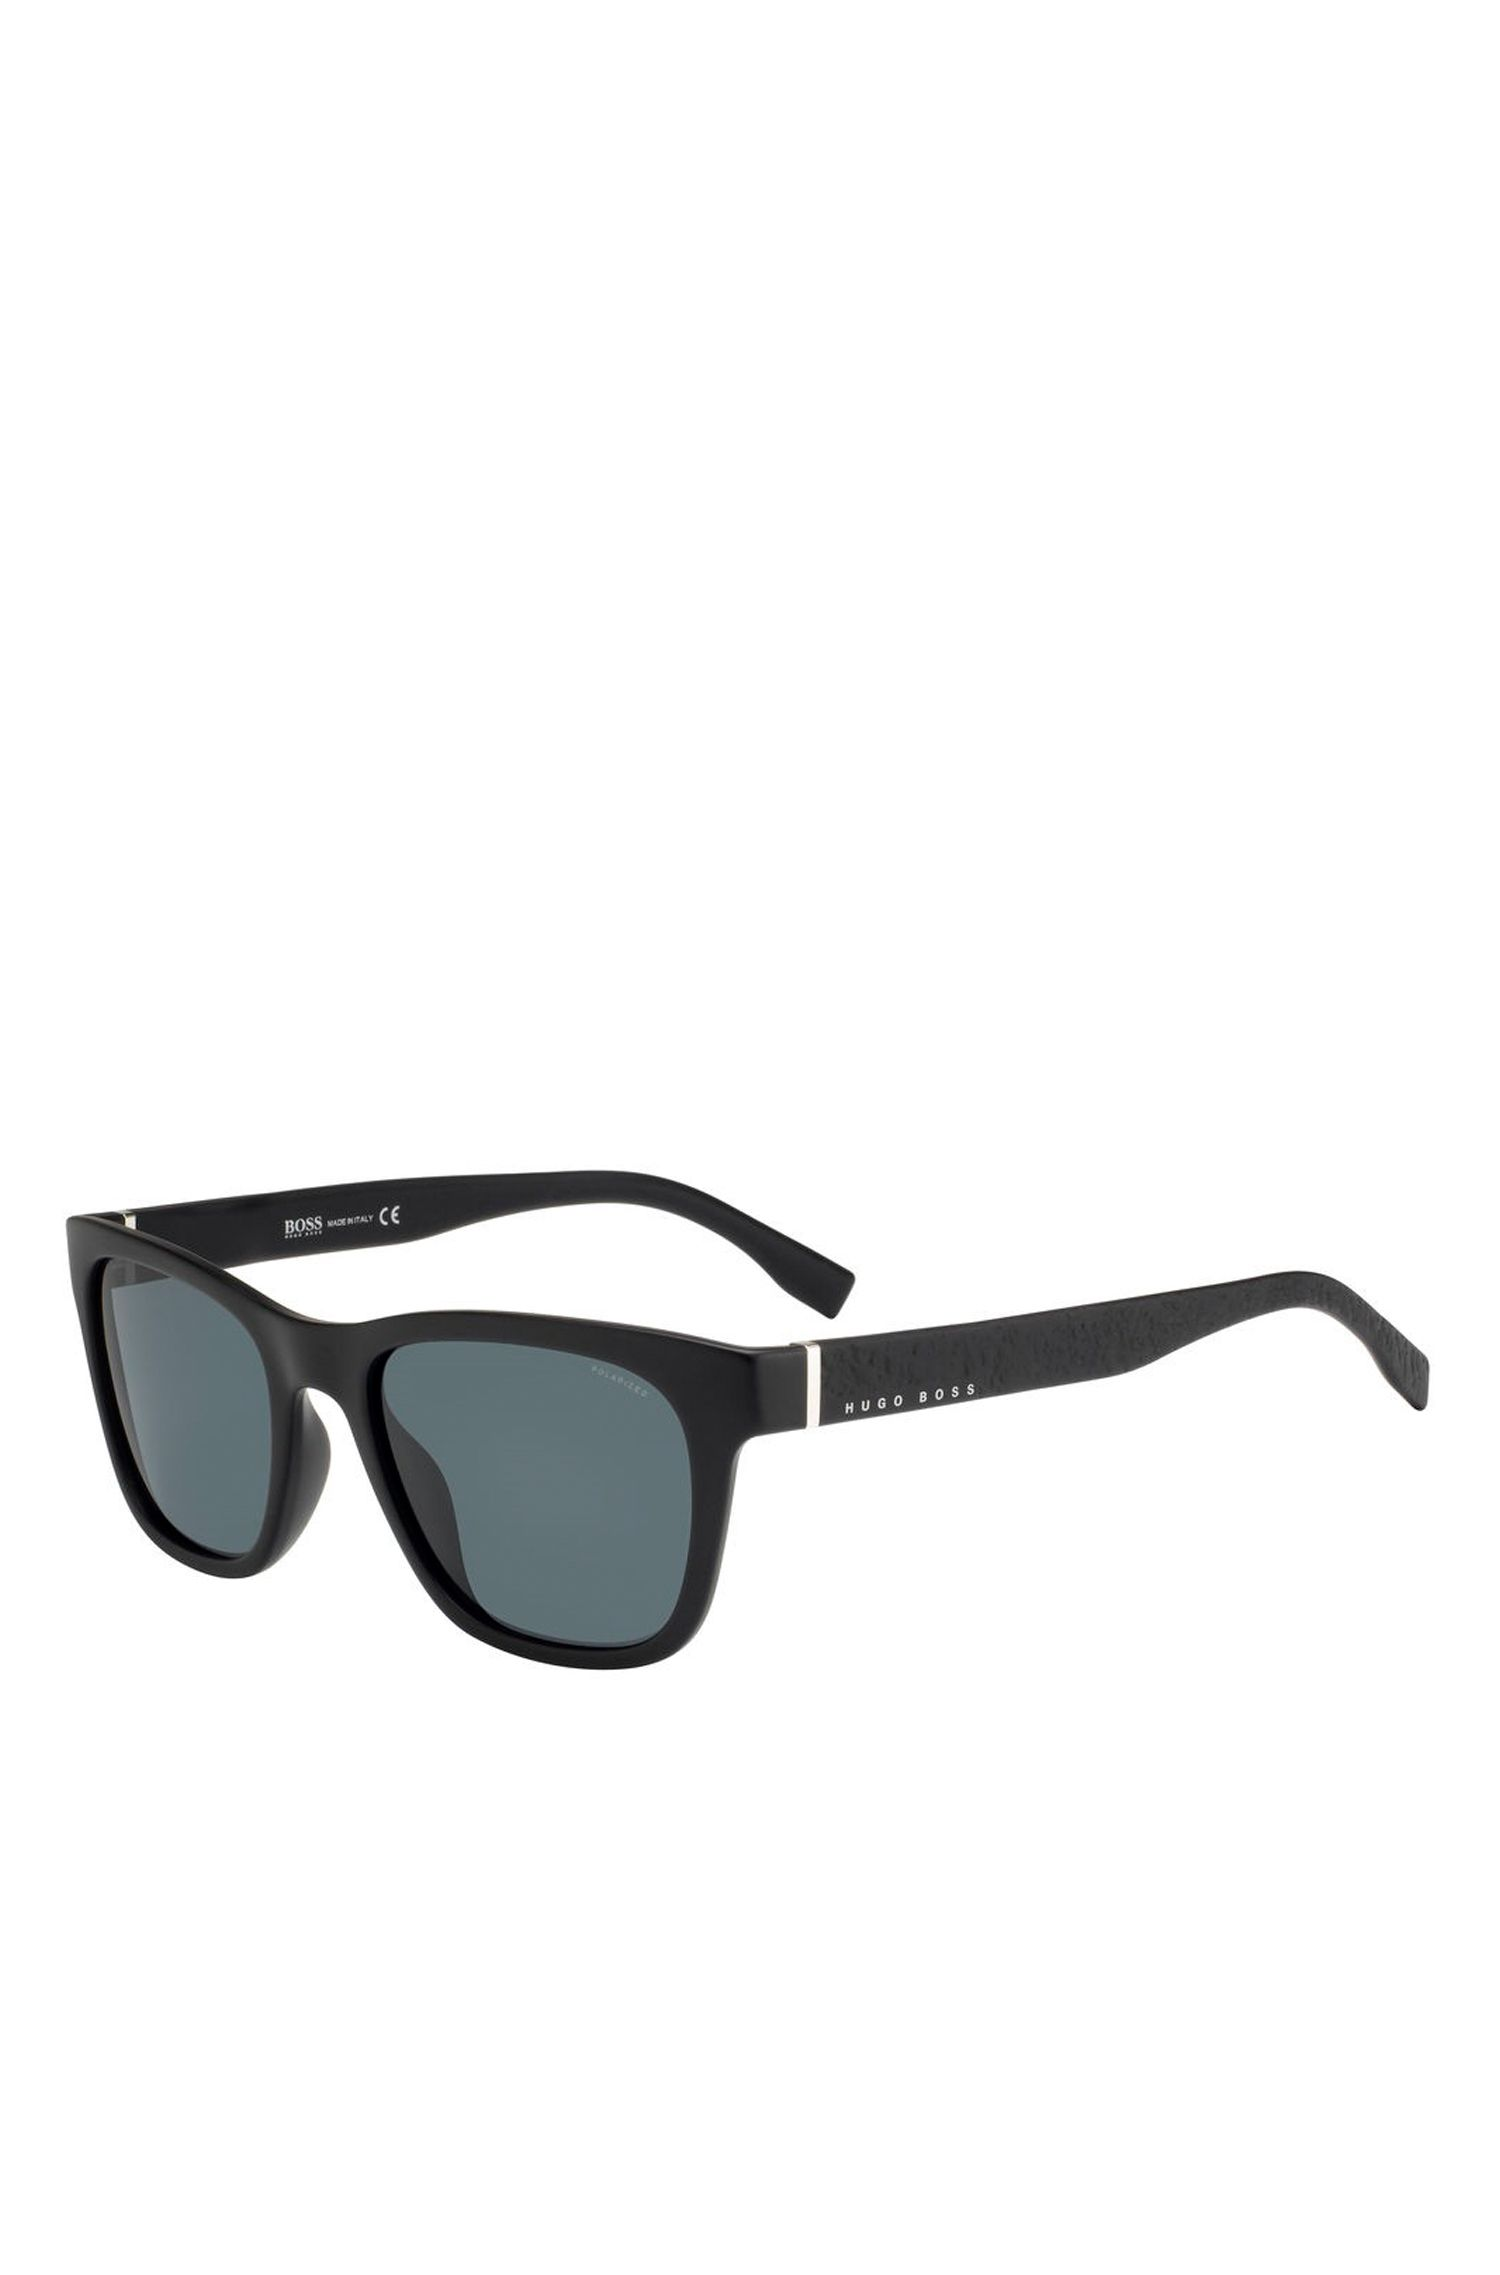 '0830S' | Black Lens Polarized Optyl Square Sunglasses